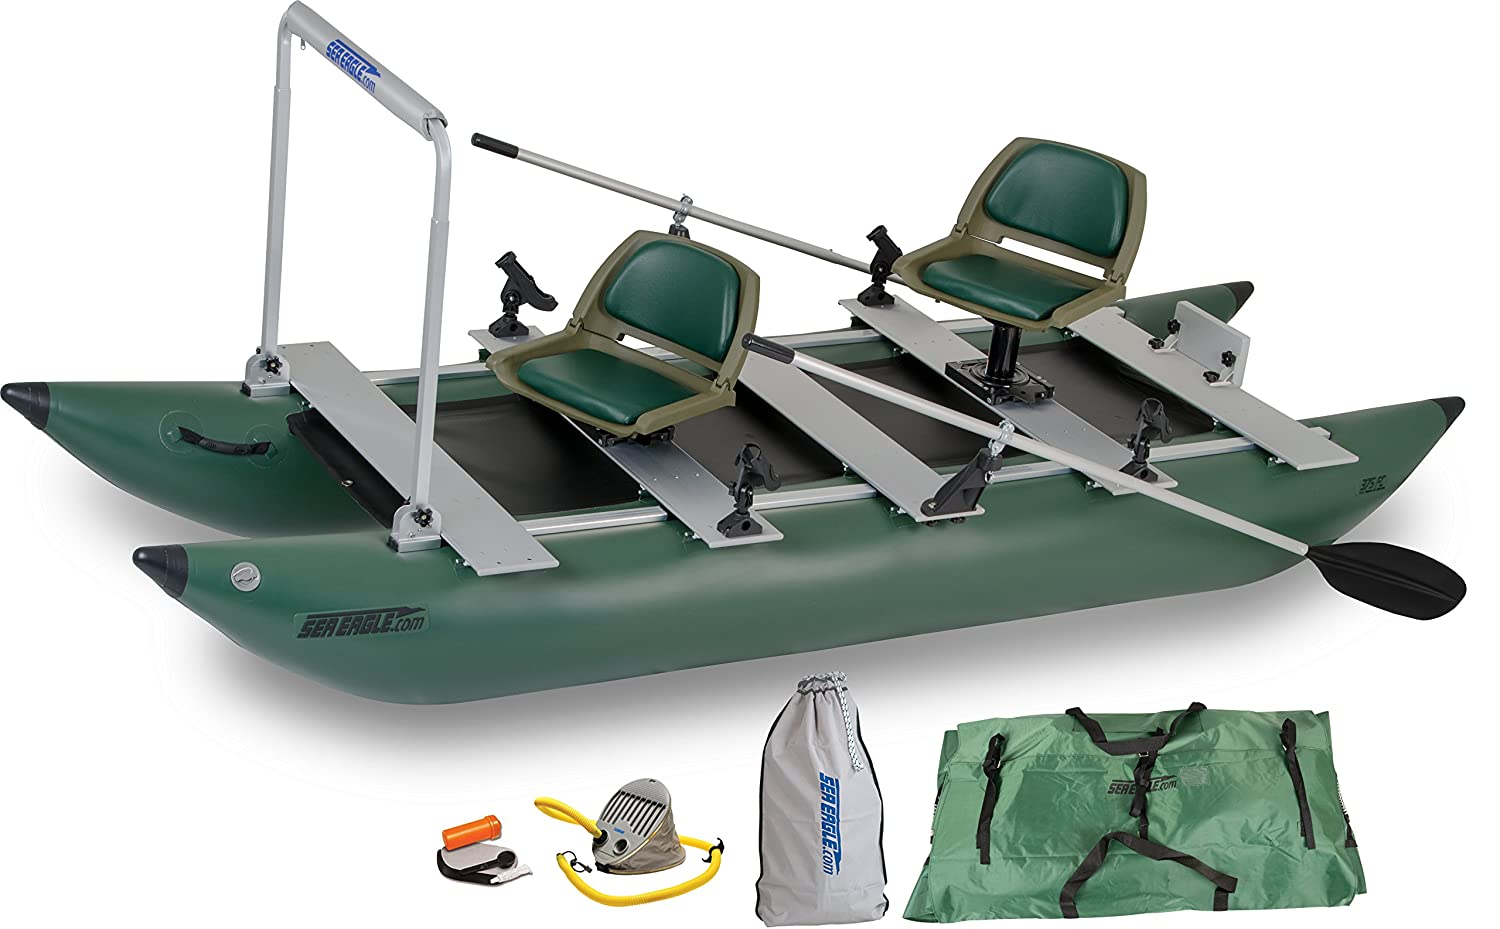 The Green 375fc sea eagle FoldCat inflatable Fishing Boat